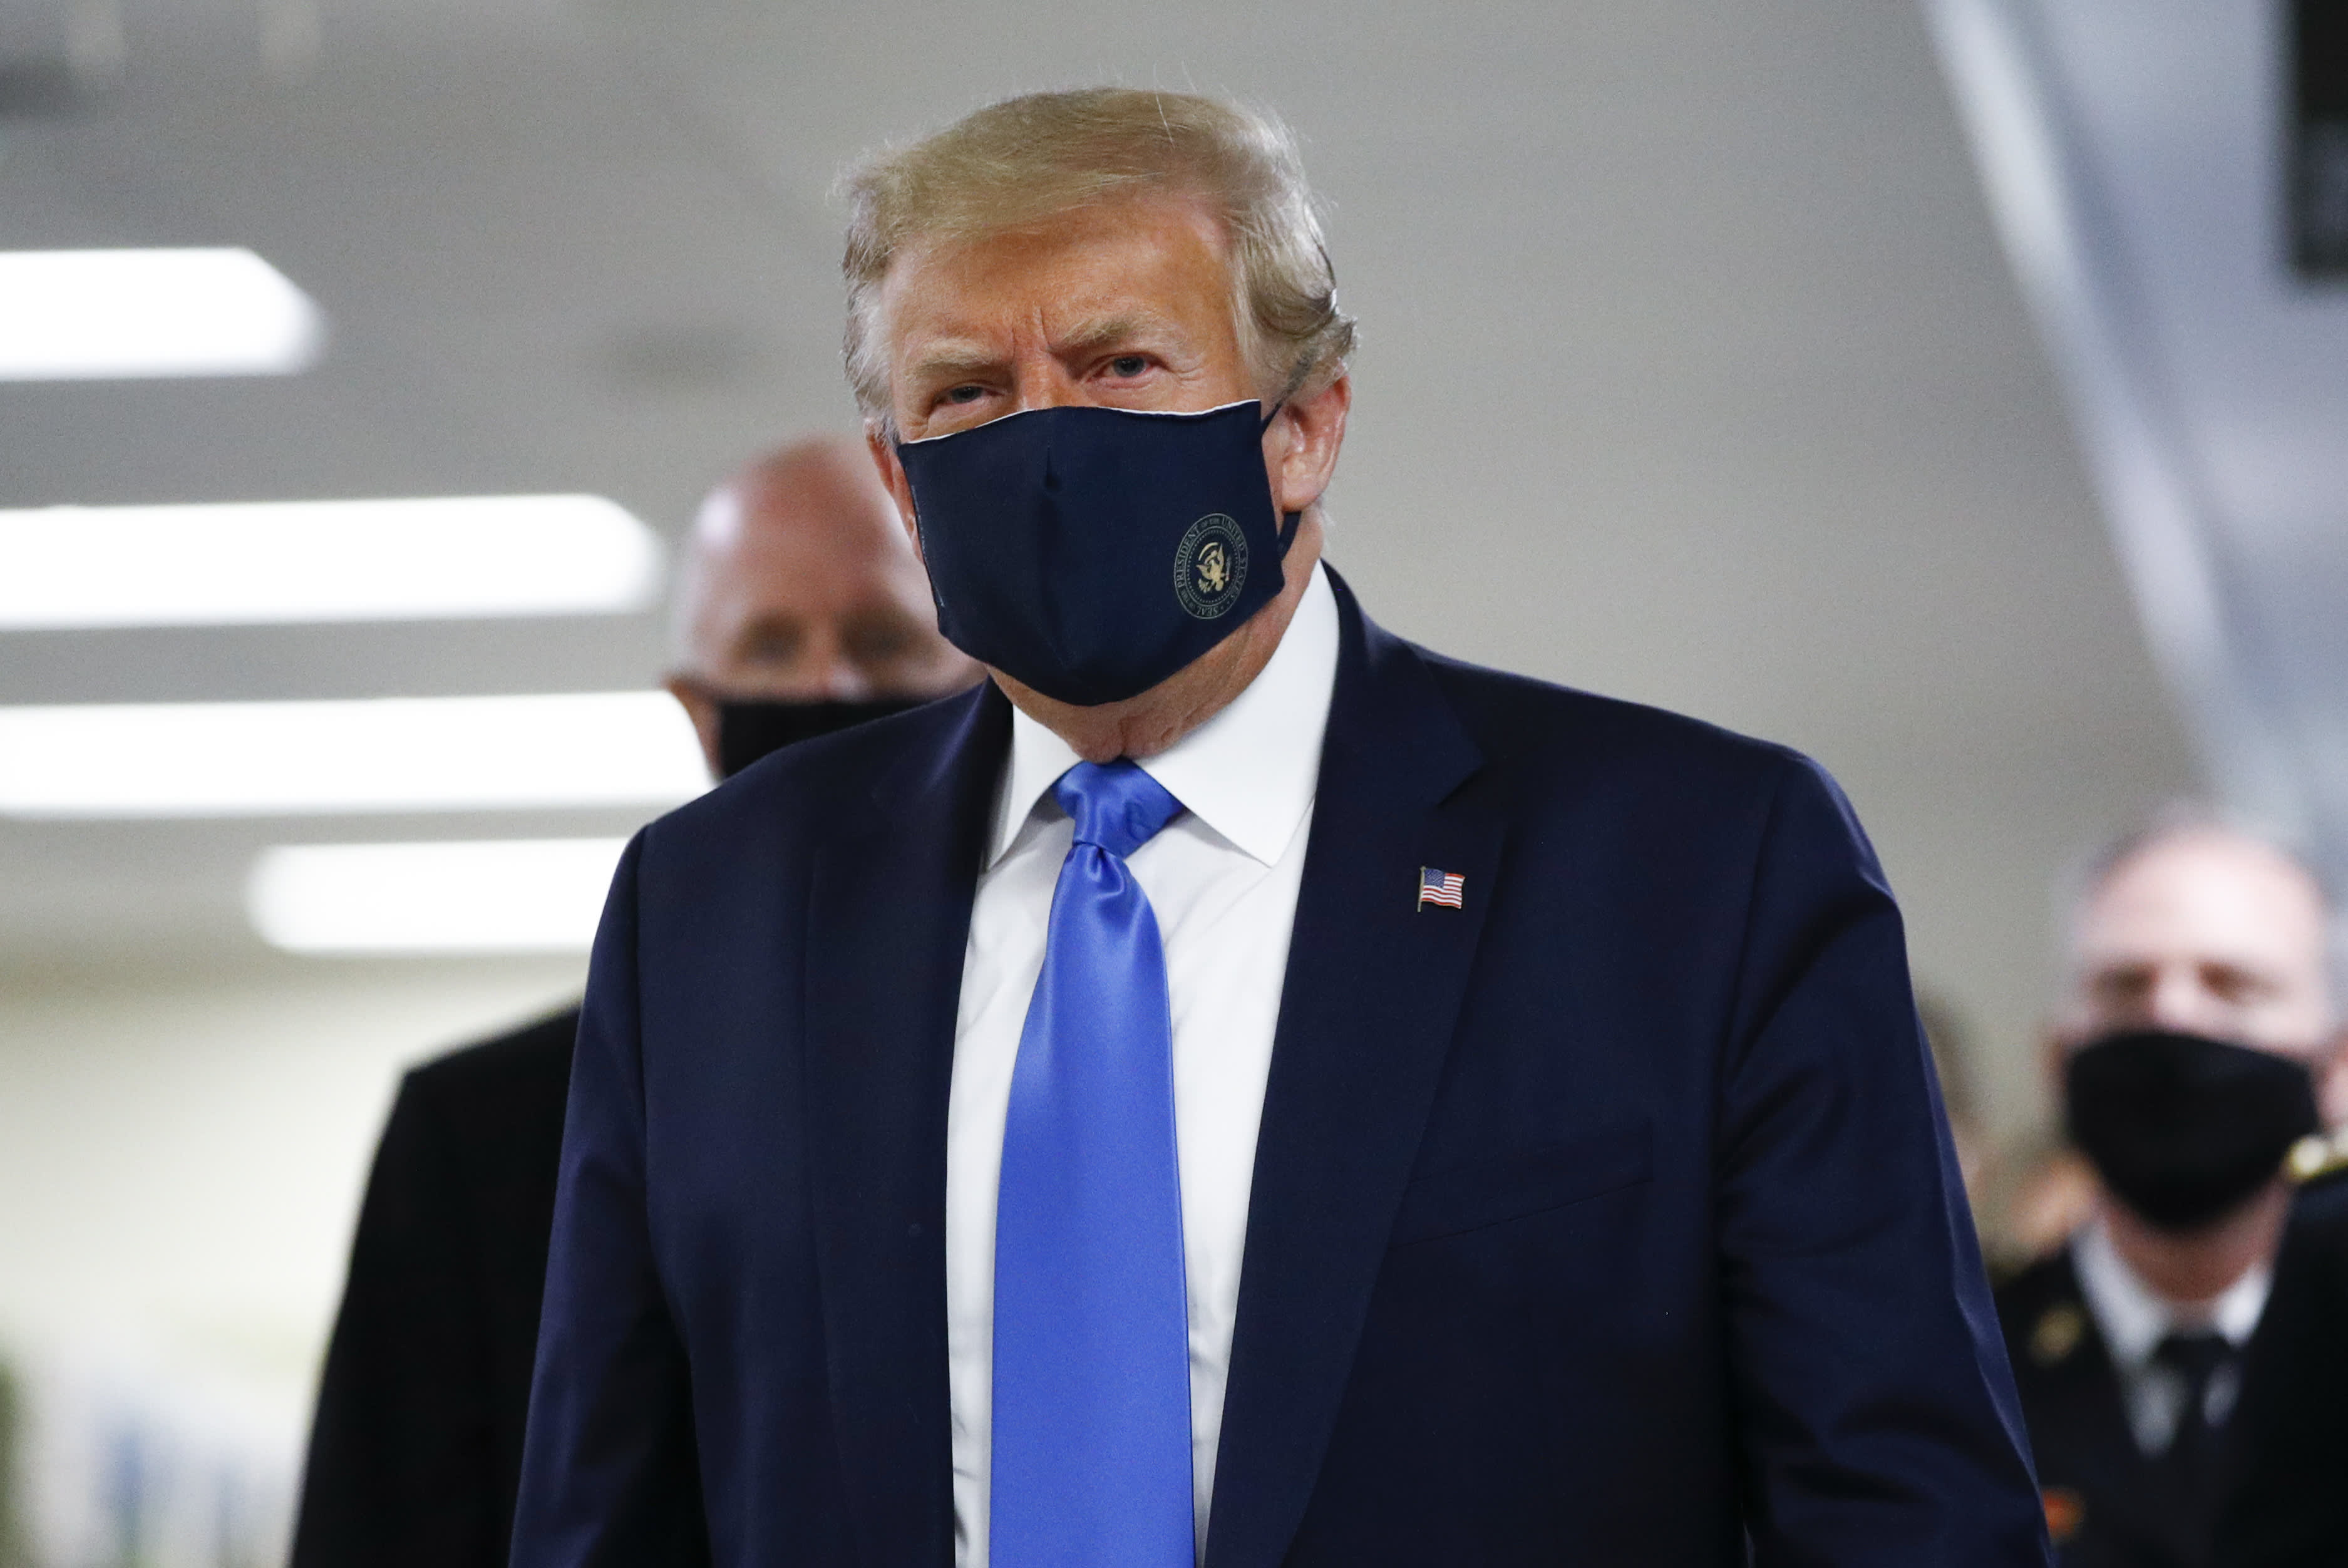 Photo of Trump wears coronavirus mask publicly for first time during visit to Walter Reed military hospital